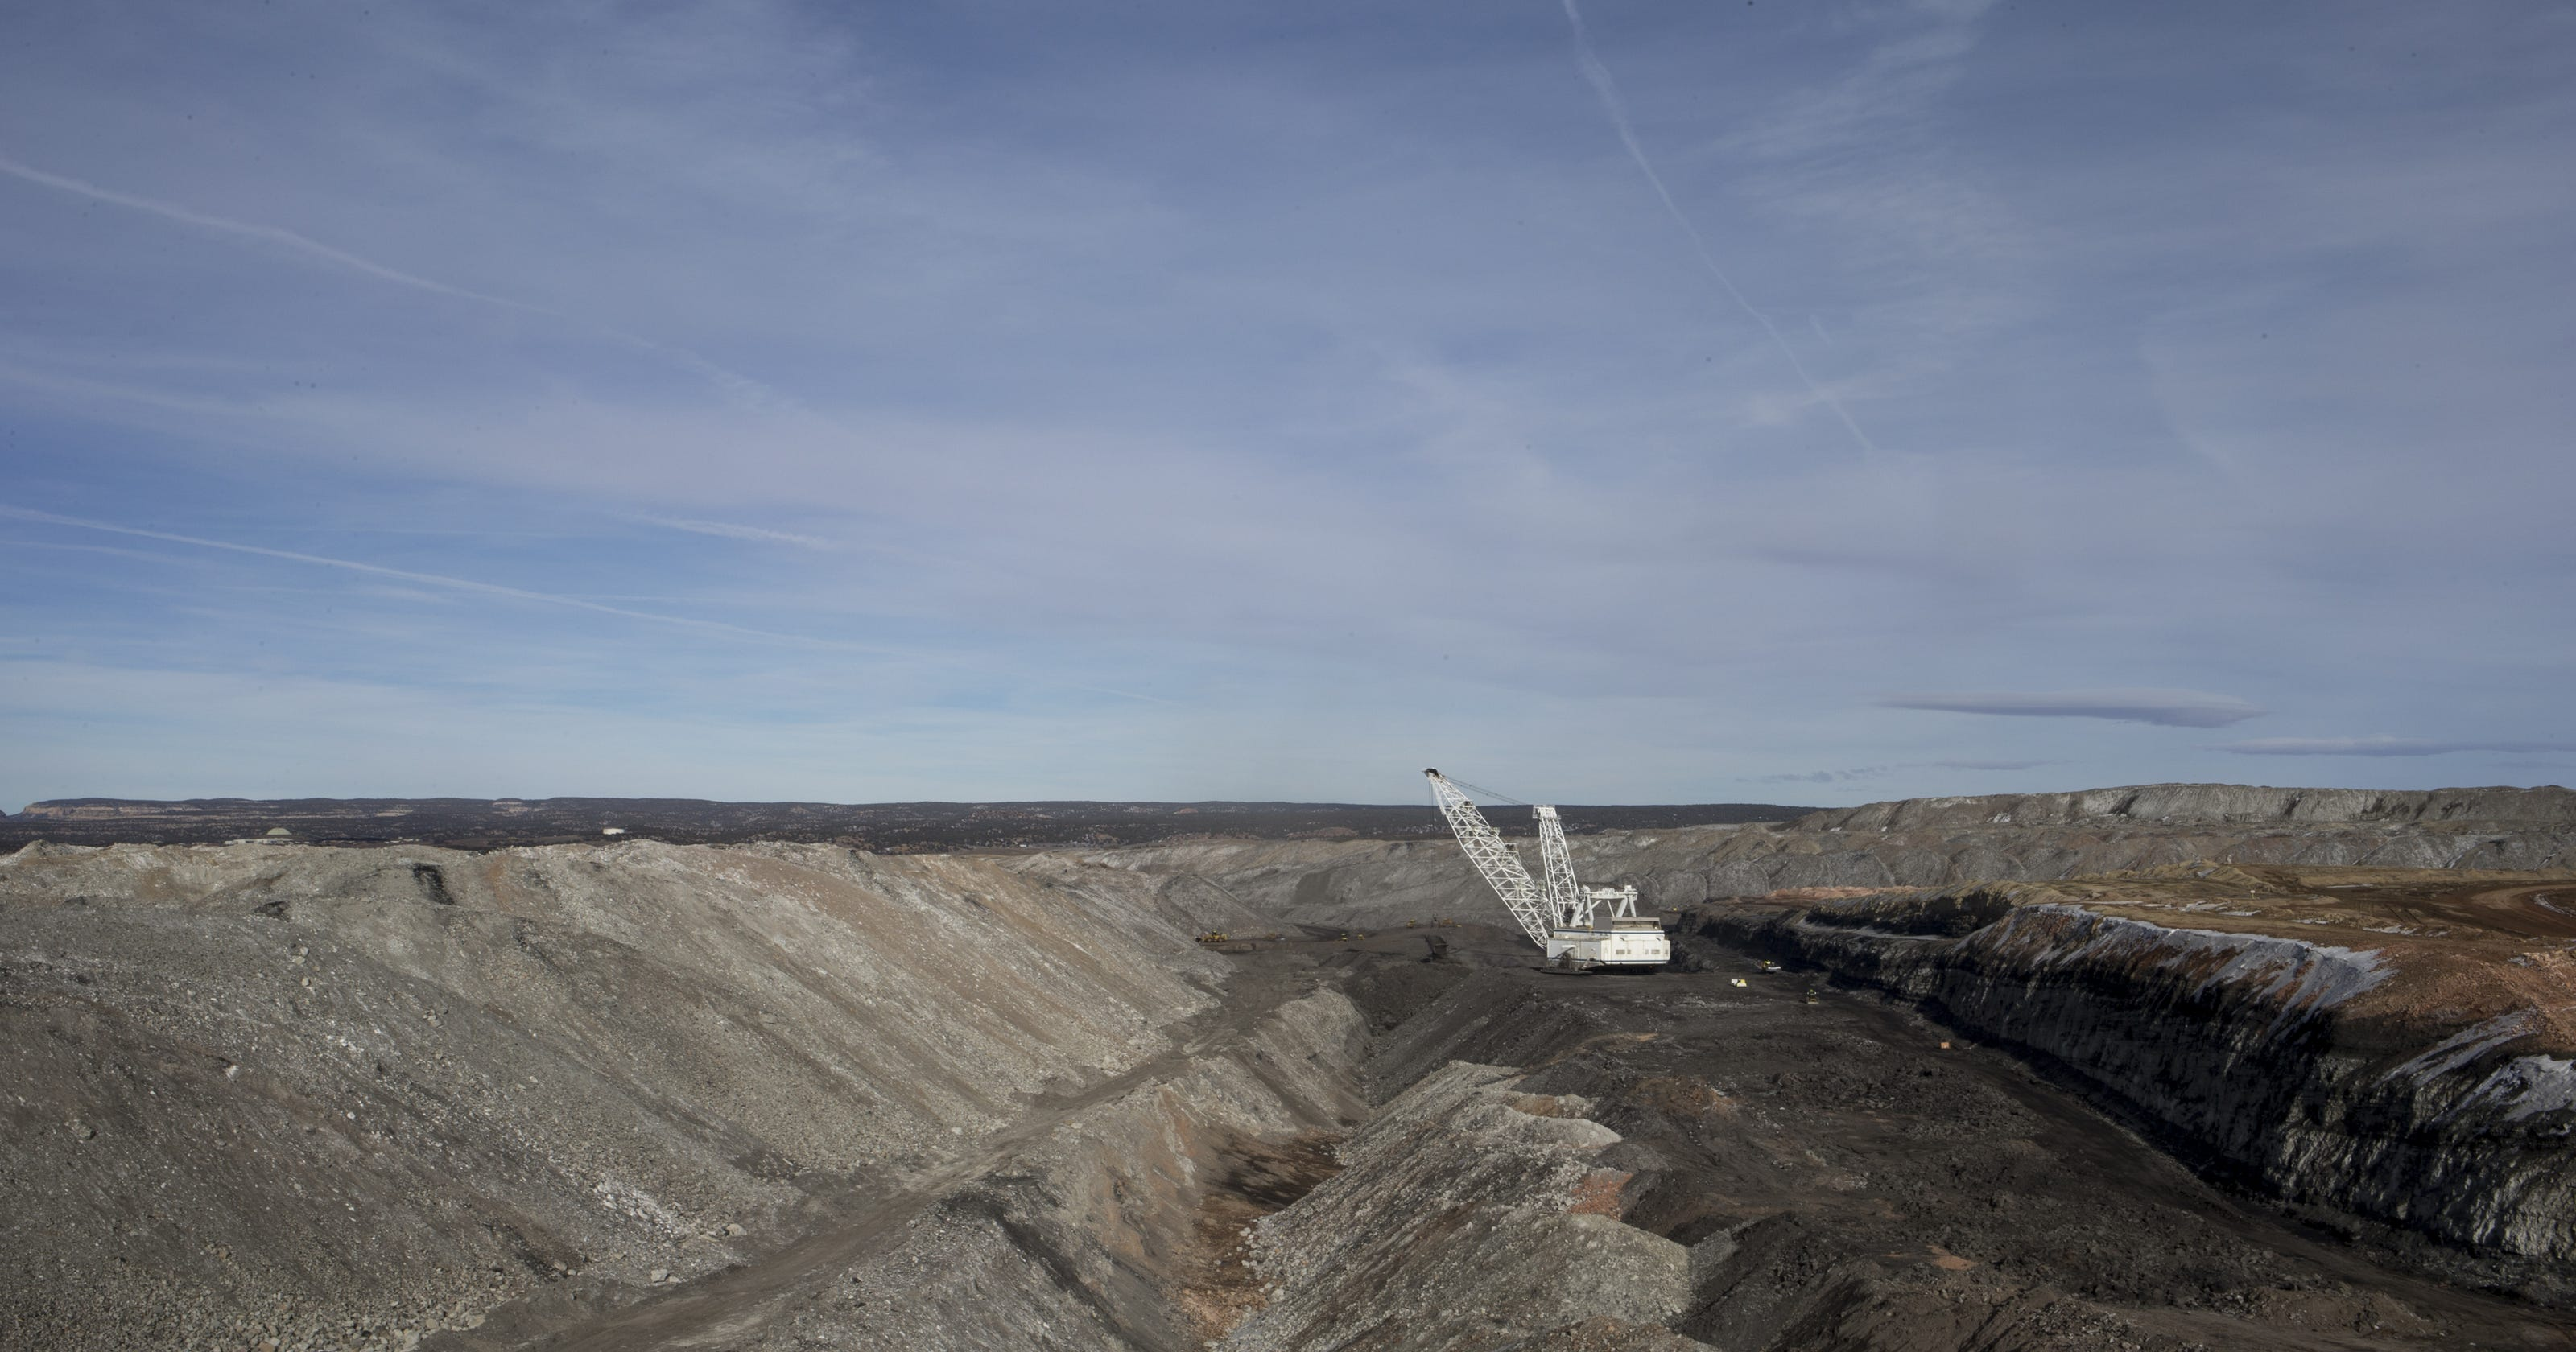 Navajo Nation could take over Kayenta Mine to continue coal operations